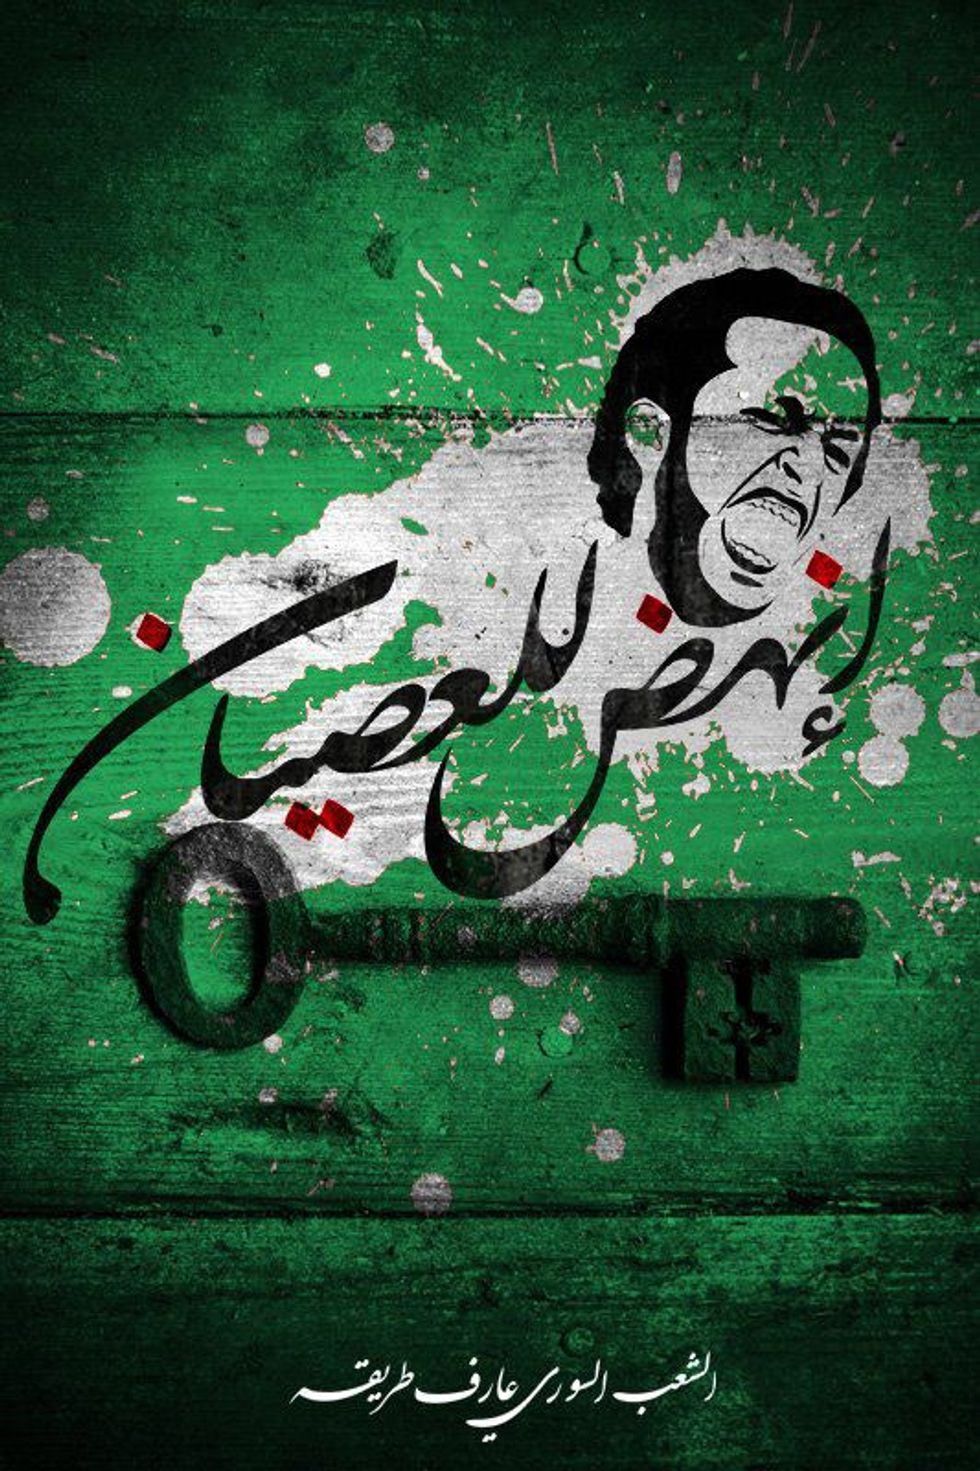 Preview Images from Syrian Resistance Art Show, Syria: A Silenced Scream